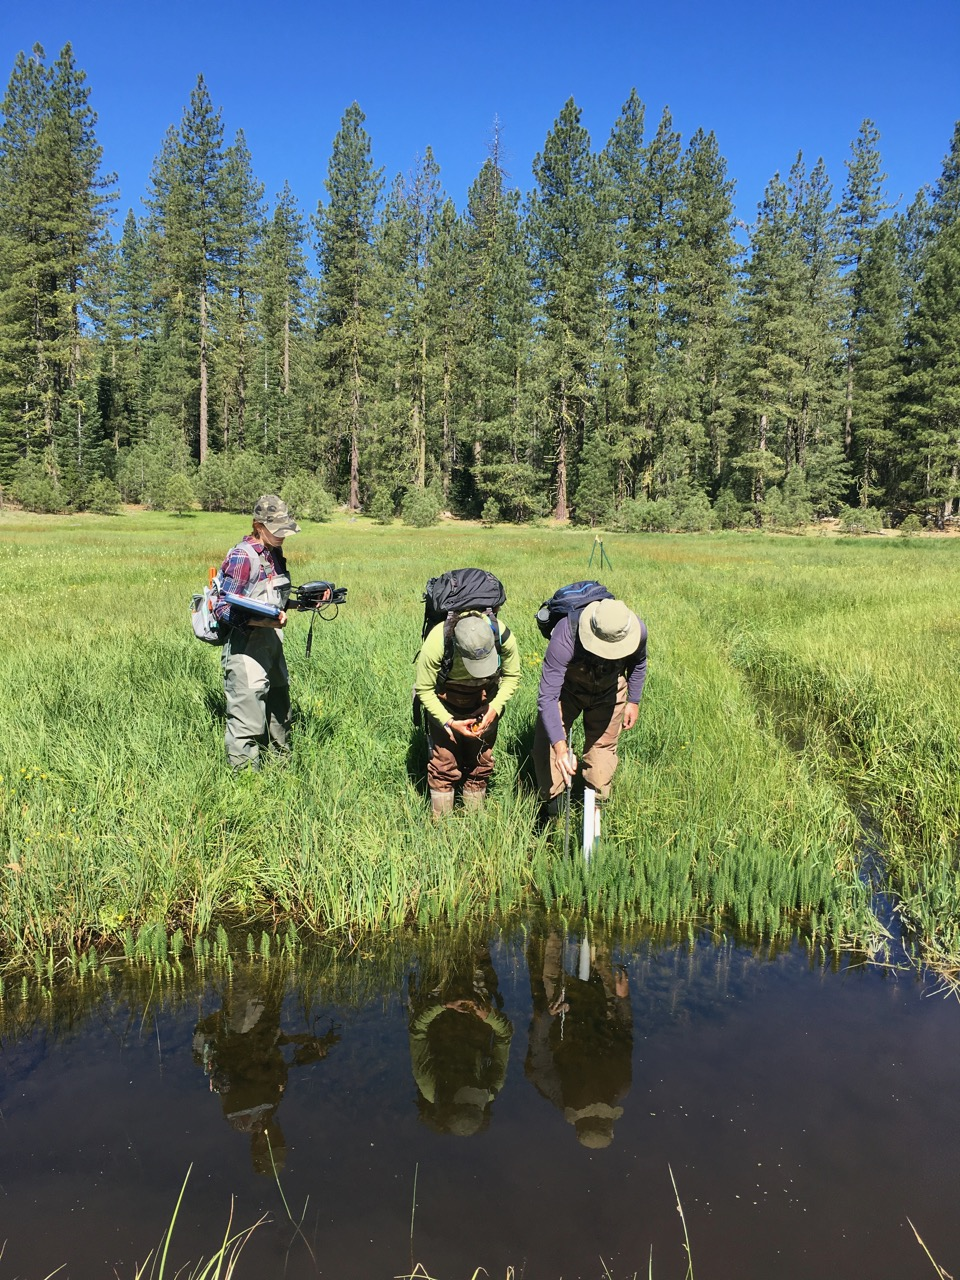 Researchers from U.C. Davis measure groundwater at Childs Meadows, Tehama County, California. Photo by Erica Gies.